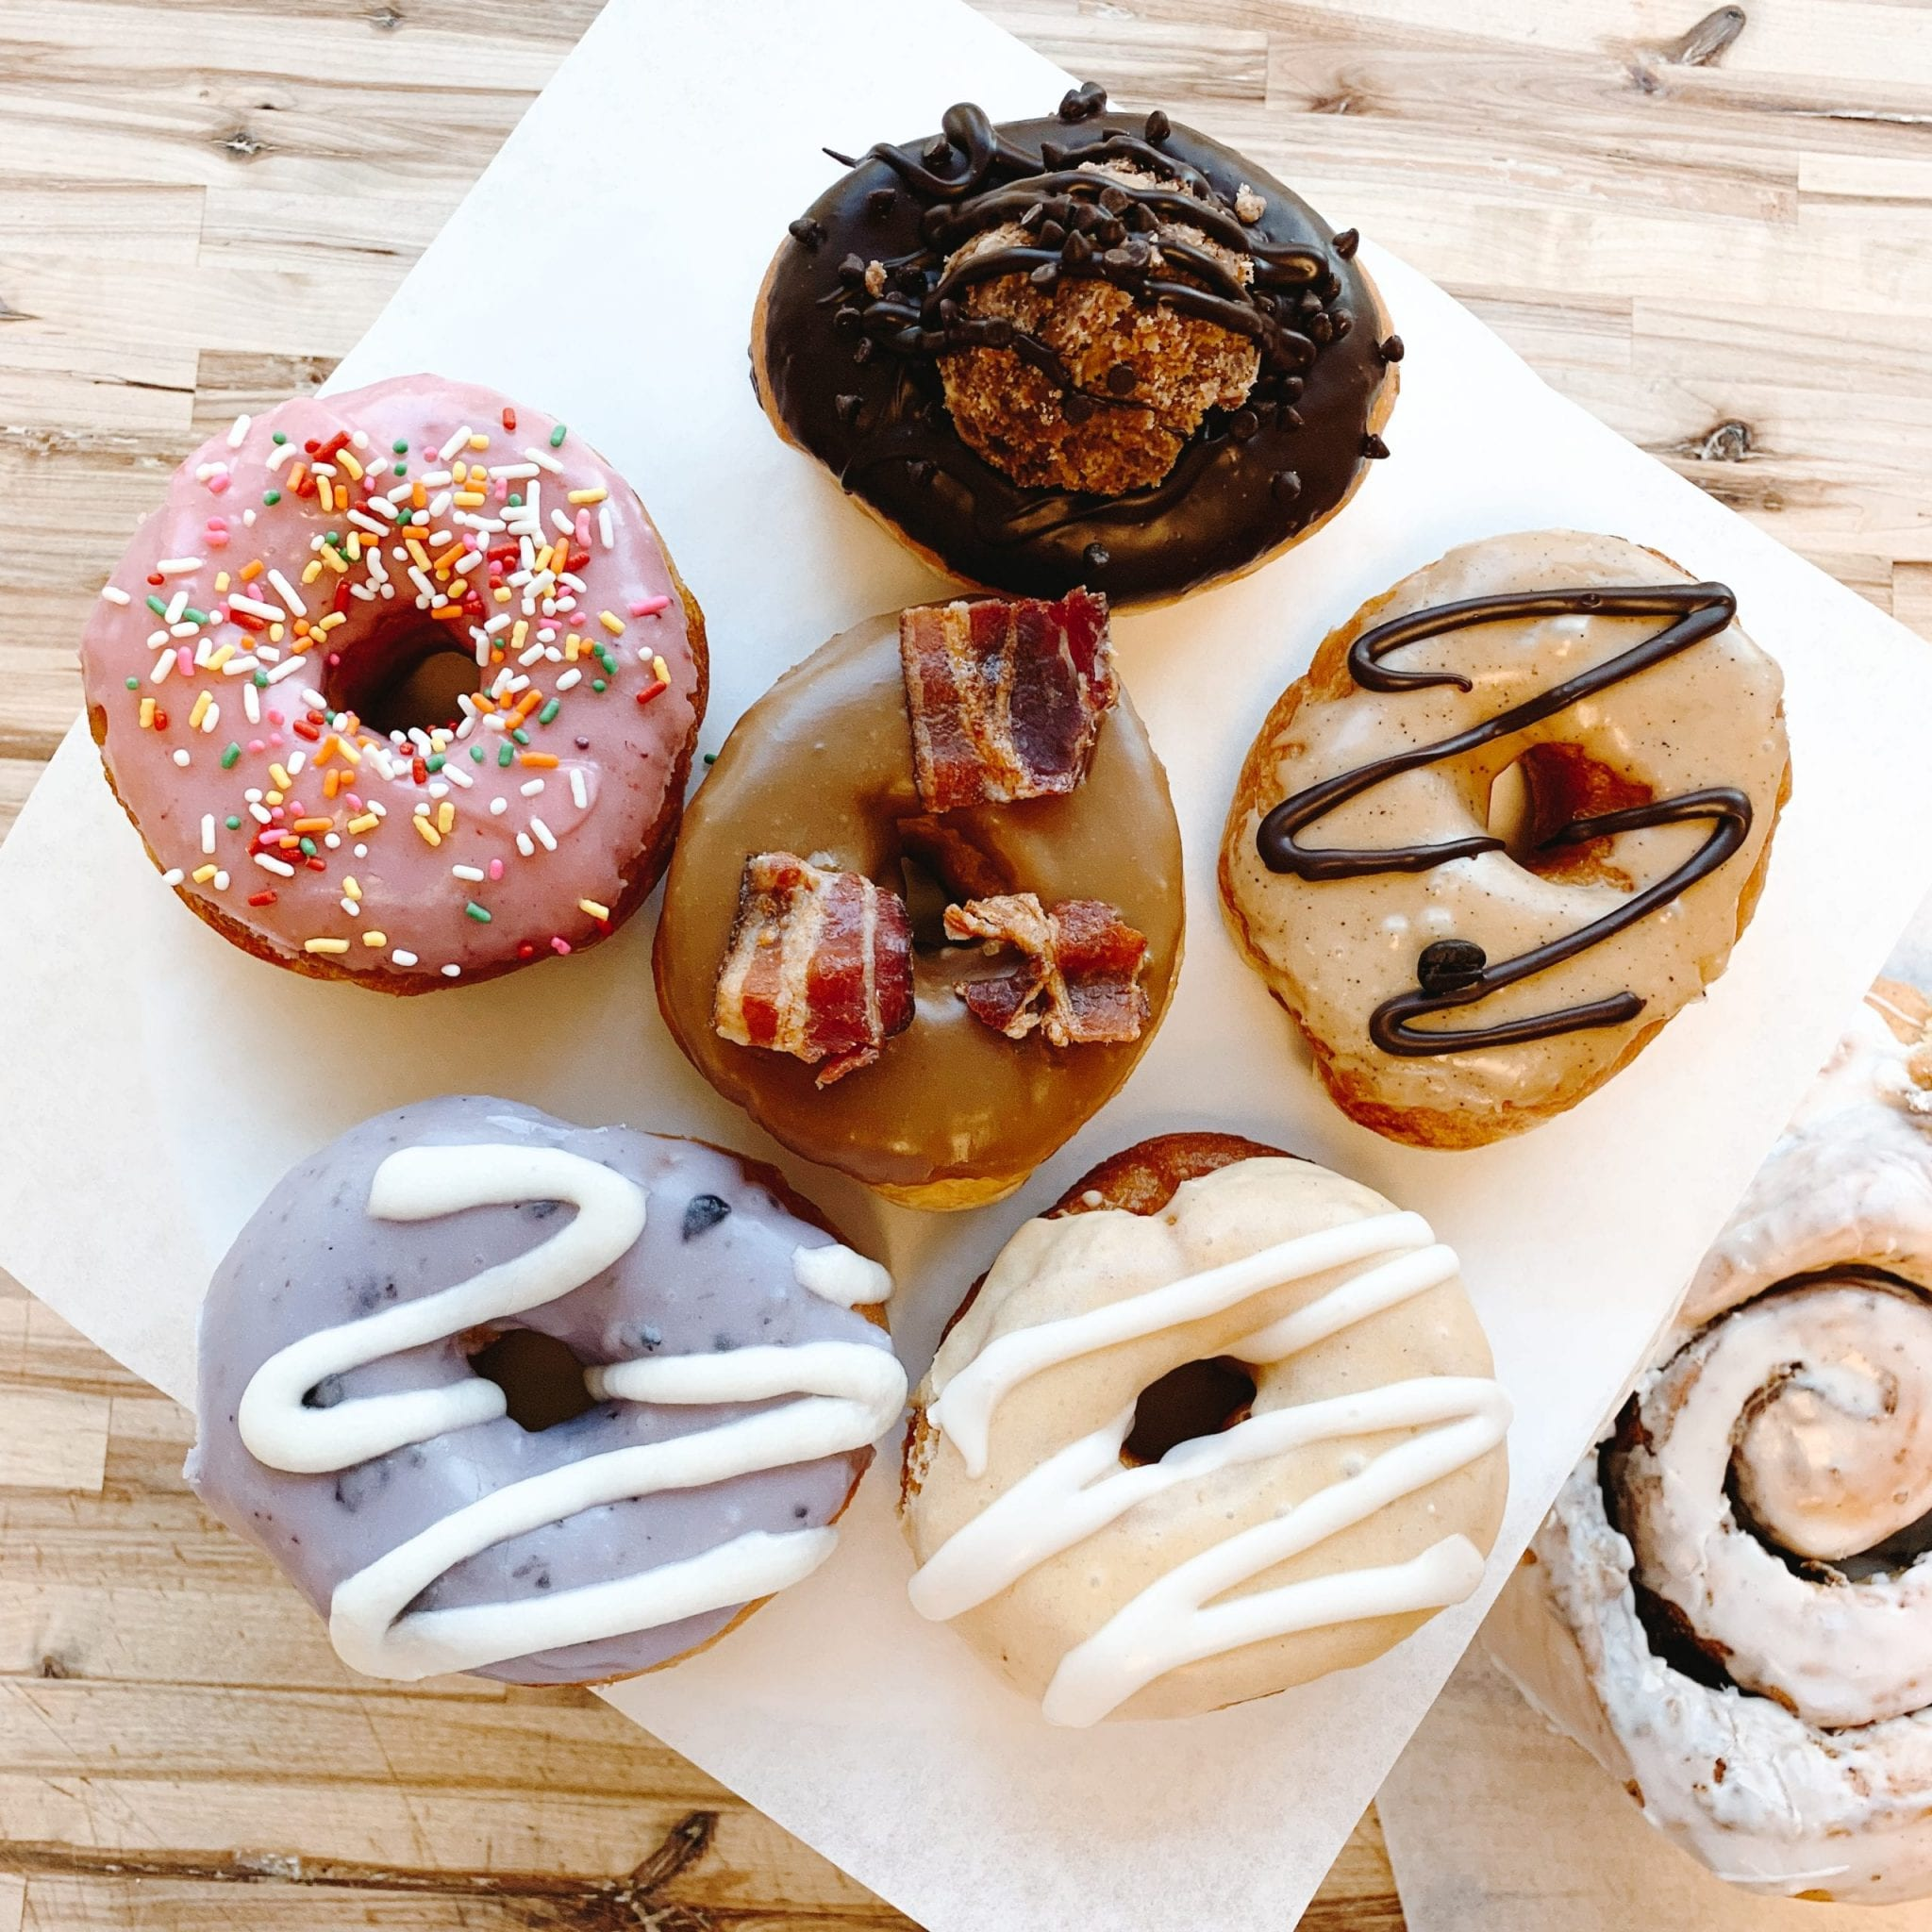 Group of six different donut flavors